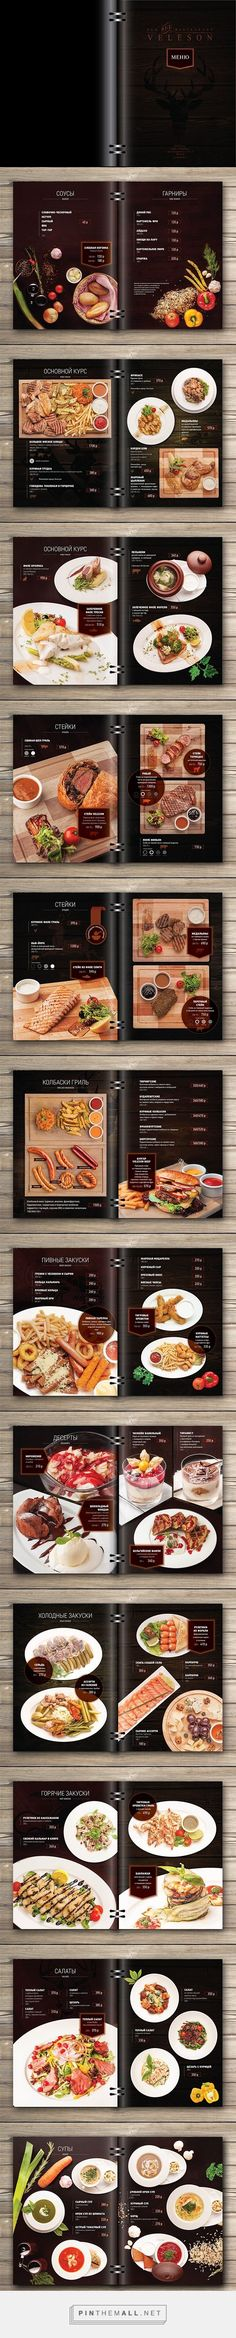 Make the food stand out with restaurant menu designs - Fiverr Outsource - Outsource your work on Fiverr and save your time. - Make the food stand out with restaurant menu designs Food Menu Design, Cafe Design, Layout Design, Print Design, Web Design, Menu Restaurant, Restaurant Design, Menu Café, Menu Book